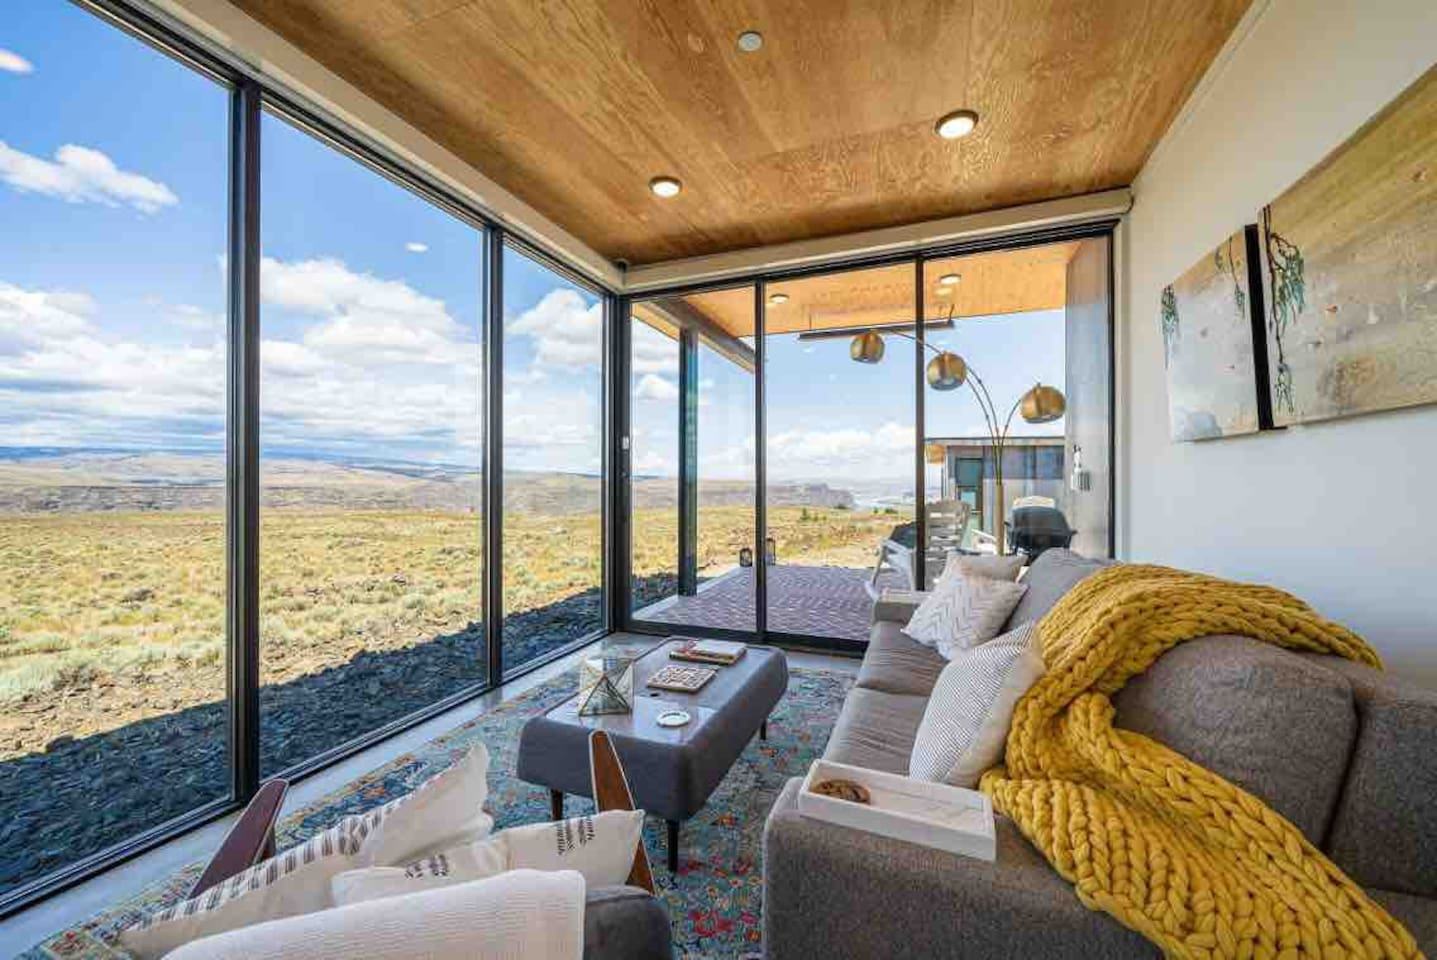 Experience the best views of the Columbia River Gorge, Ancient Lakes wine region, and Columbia Basin wilderness from the comfort of our home. It's clever design creates seamless indoor/outdoor views of the river, wilderness, and stunning sunsets.